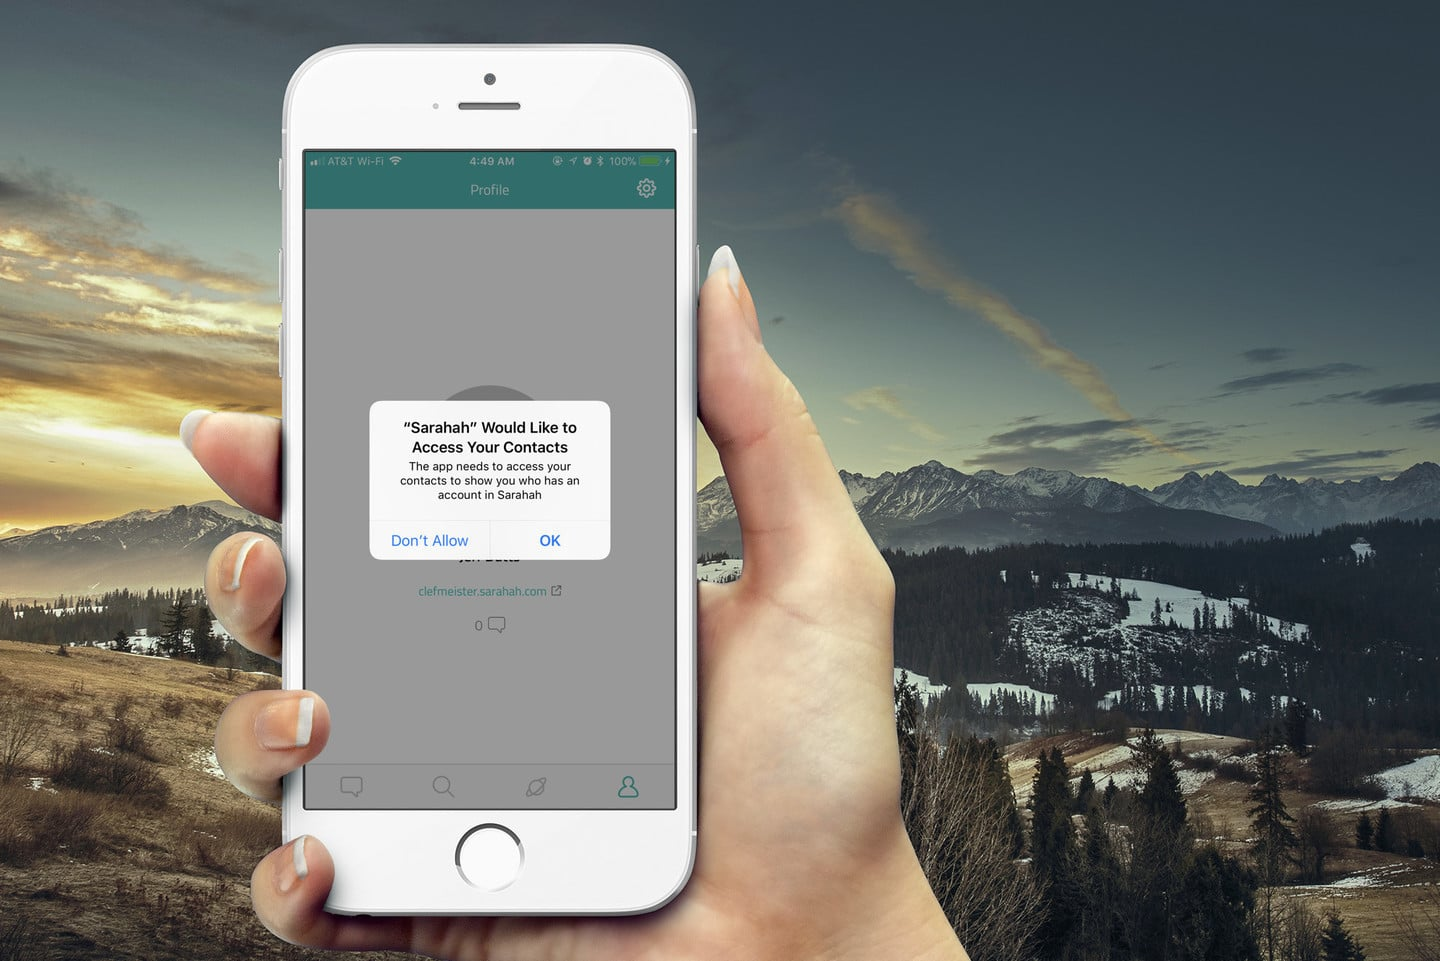 Sarahah Wants Your Contact Details for a Non-Existing Feature